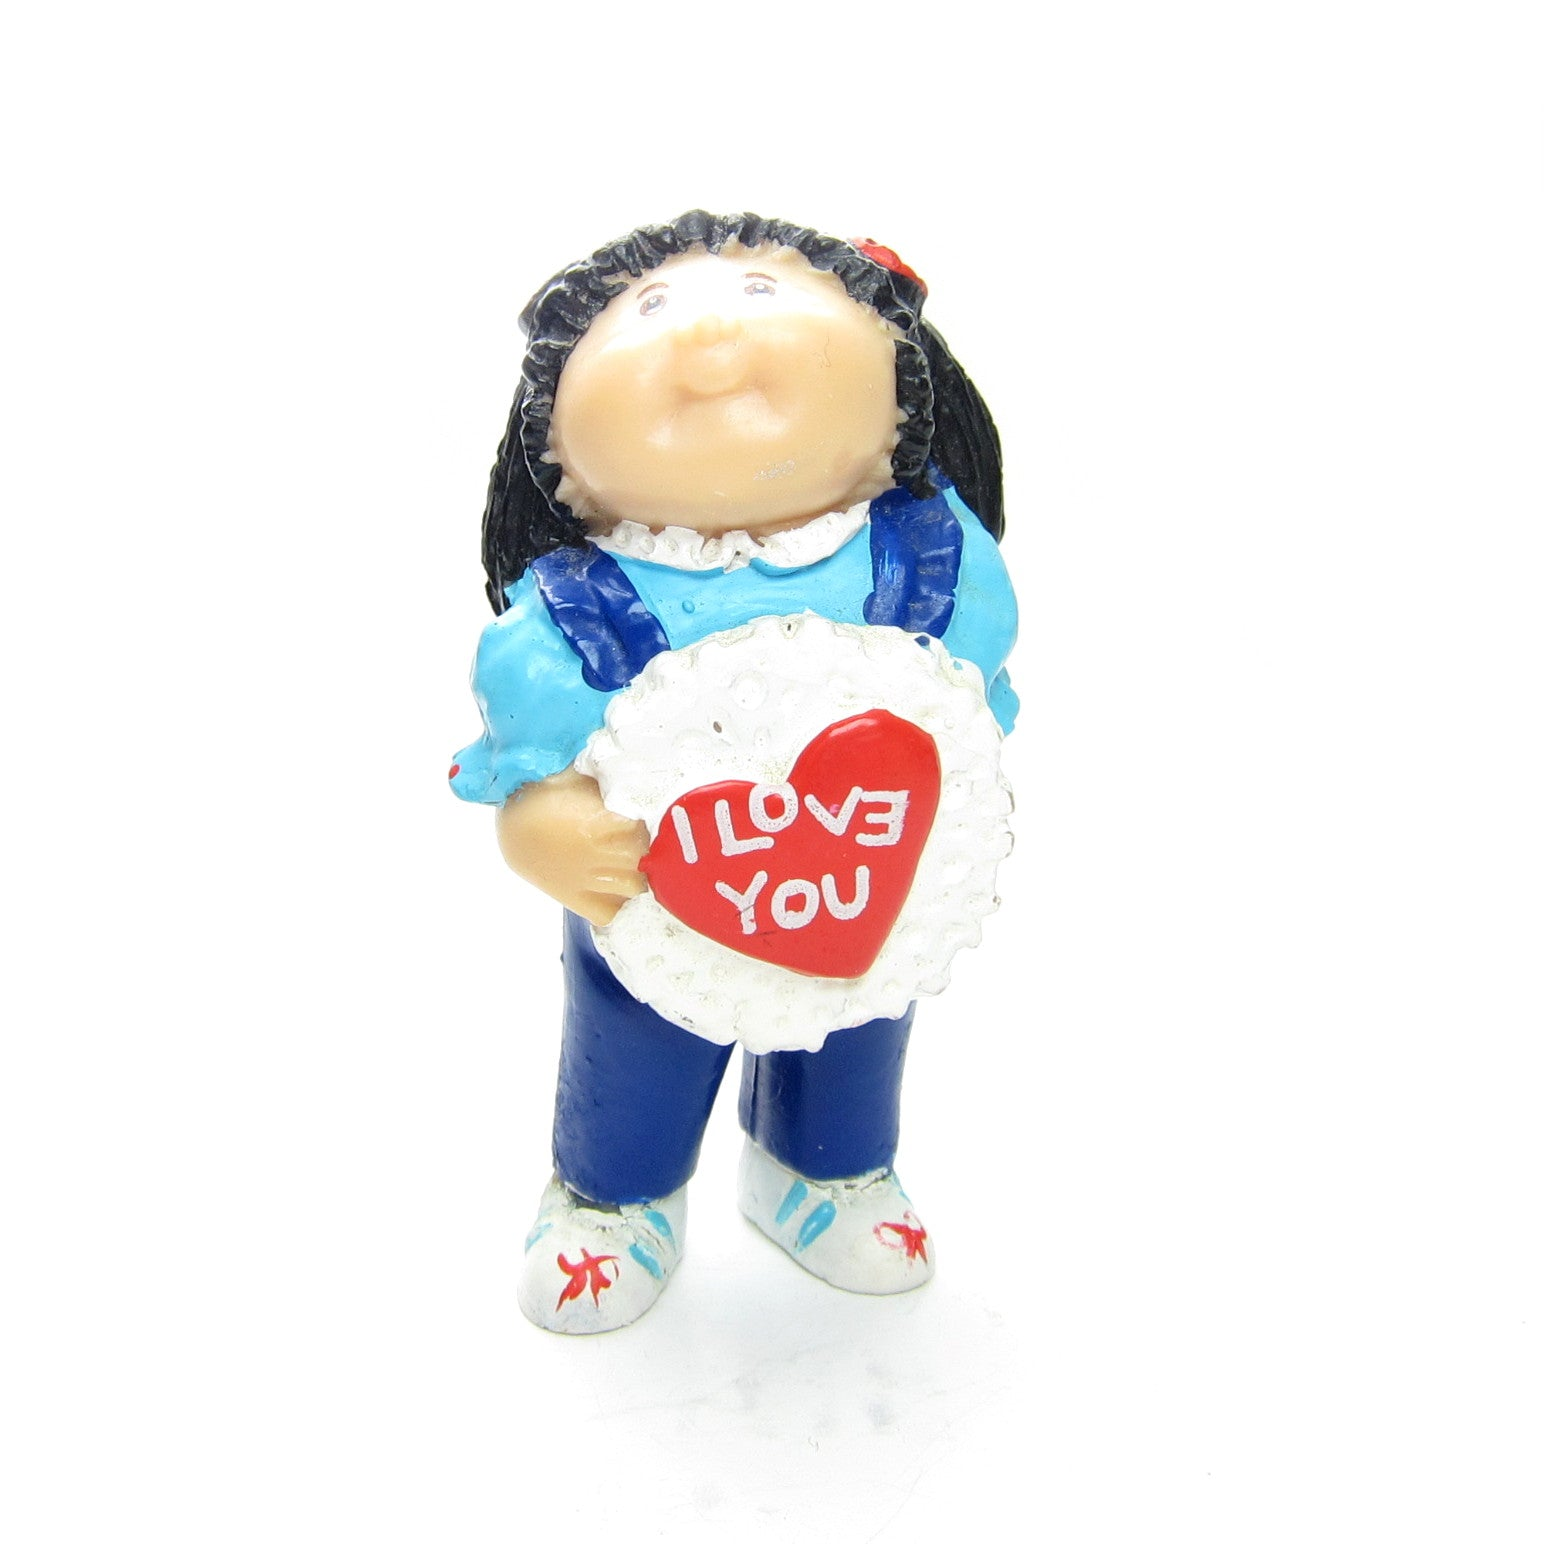 Cabbage Patch Kids PVC miniature figurine I Love You heart